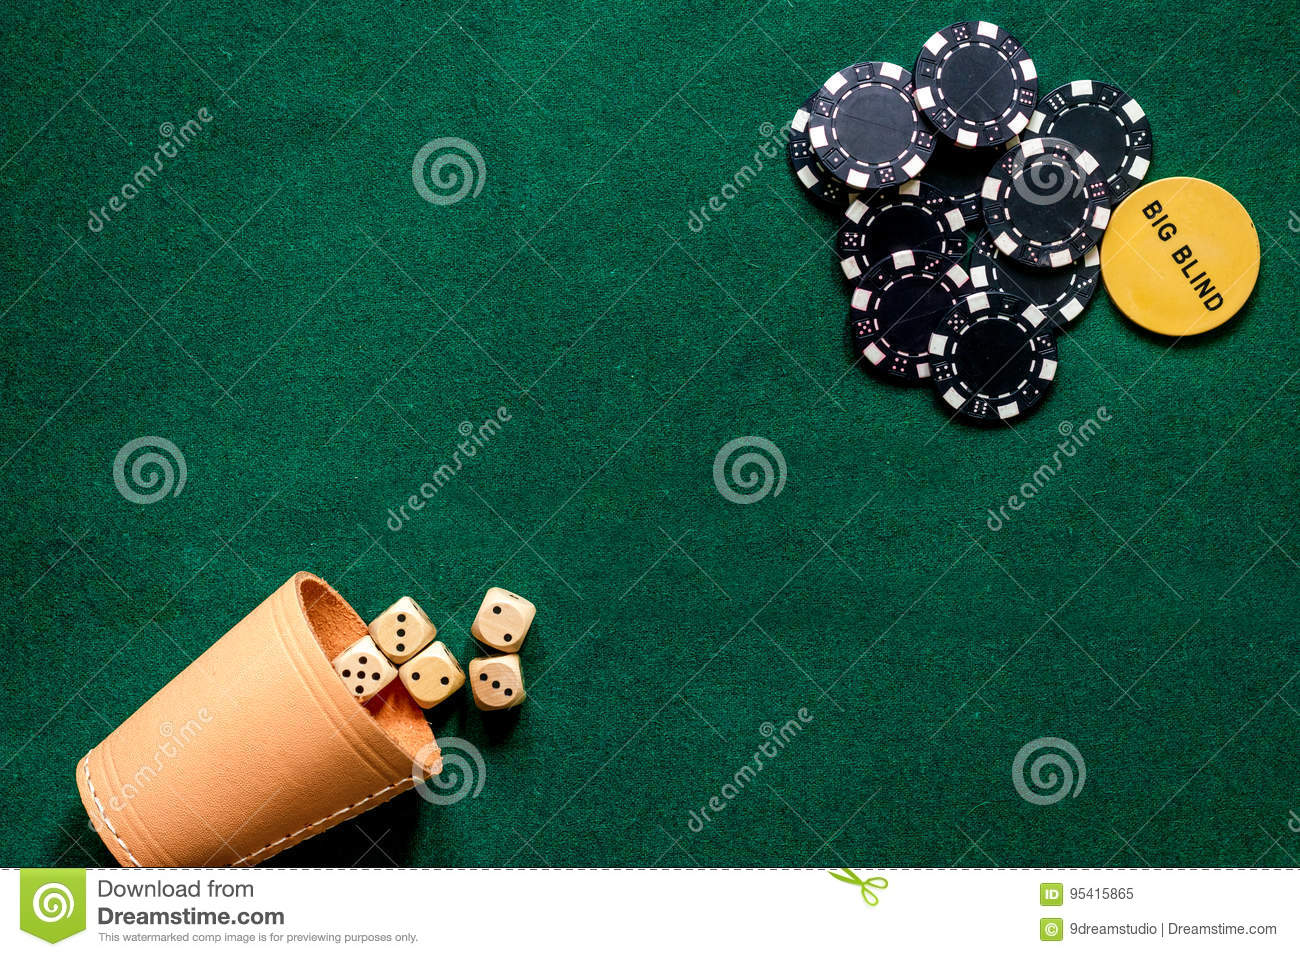 Big Blind Poker Chips And Dices On A Green Gaming Table Top